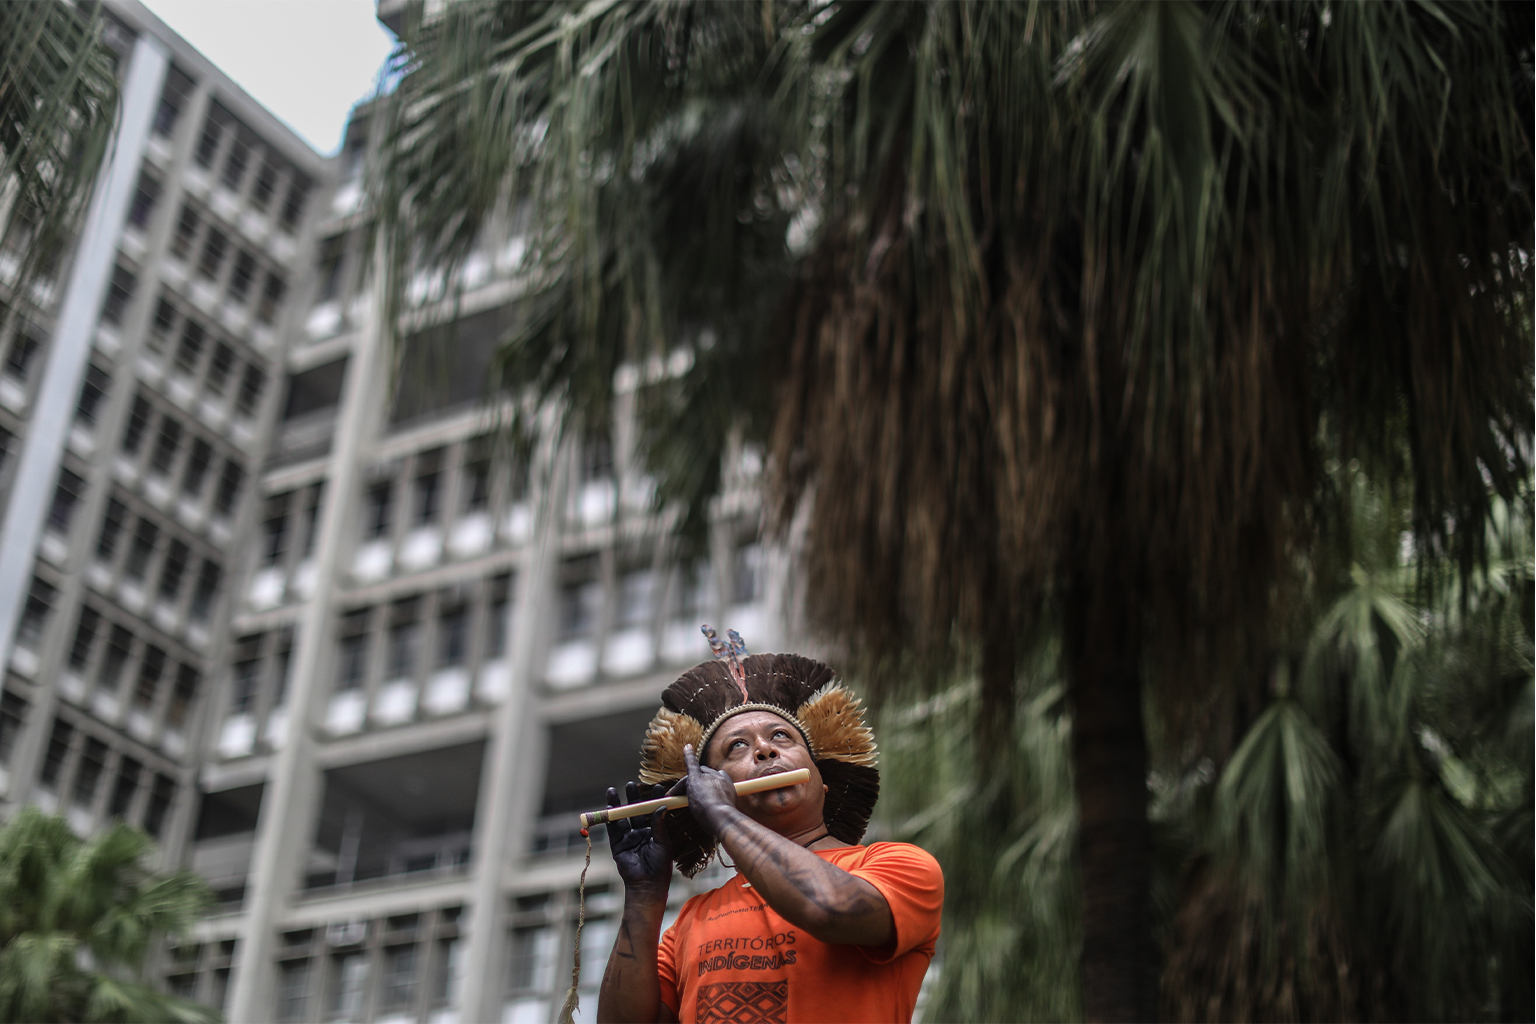 A man wearing Indigenous headwear stands and plays an instrument in front of a building and trees.